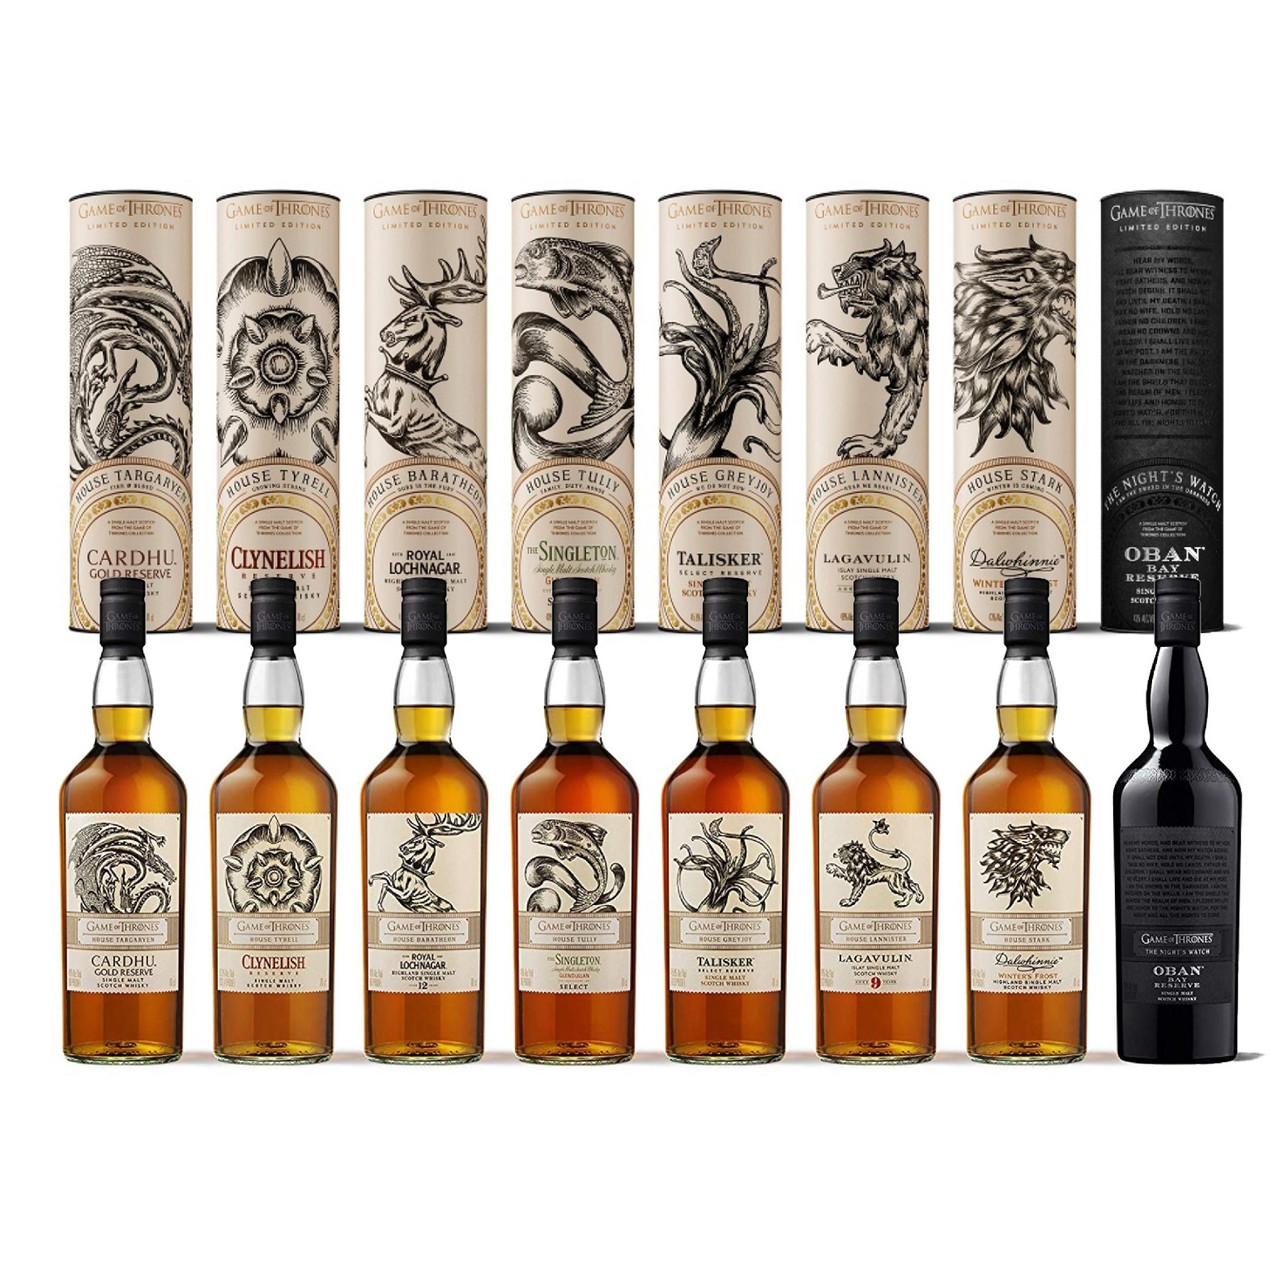 Game of Thrones 'Complete Collection Set' of Single Malt Scotch Whiskies! This complete collection set of eight Scotch whiskies has been paired with a particular house from the seven kingdoms including the legendary Nights Watch! Each bottle comes in its own canister with descriptions of each house!